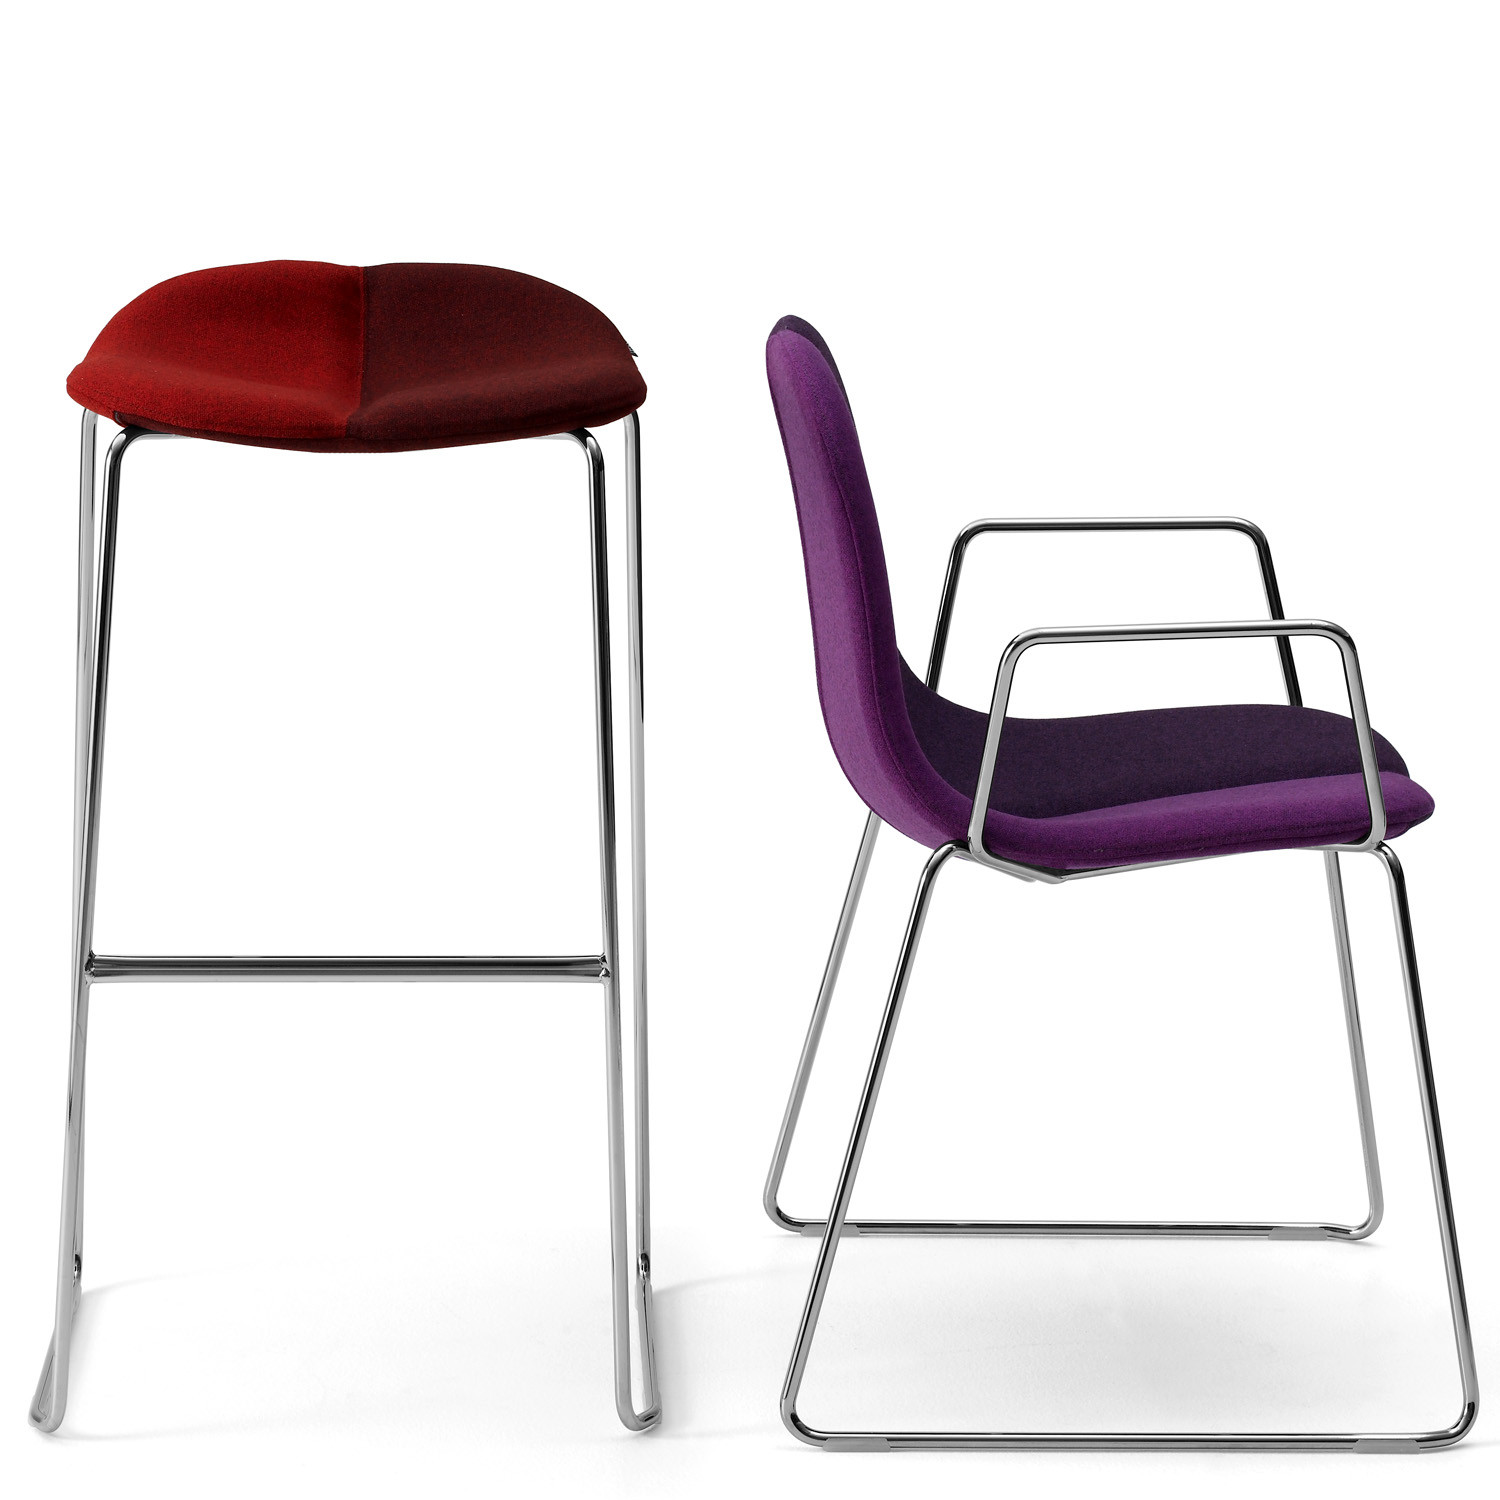 Duo Bar Stool and Duo Chair